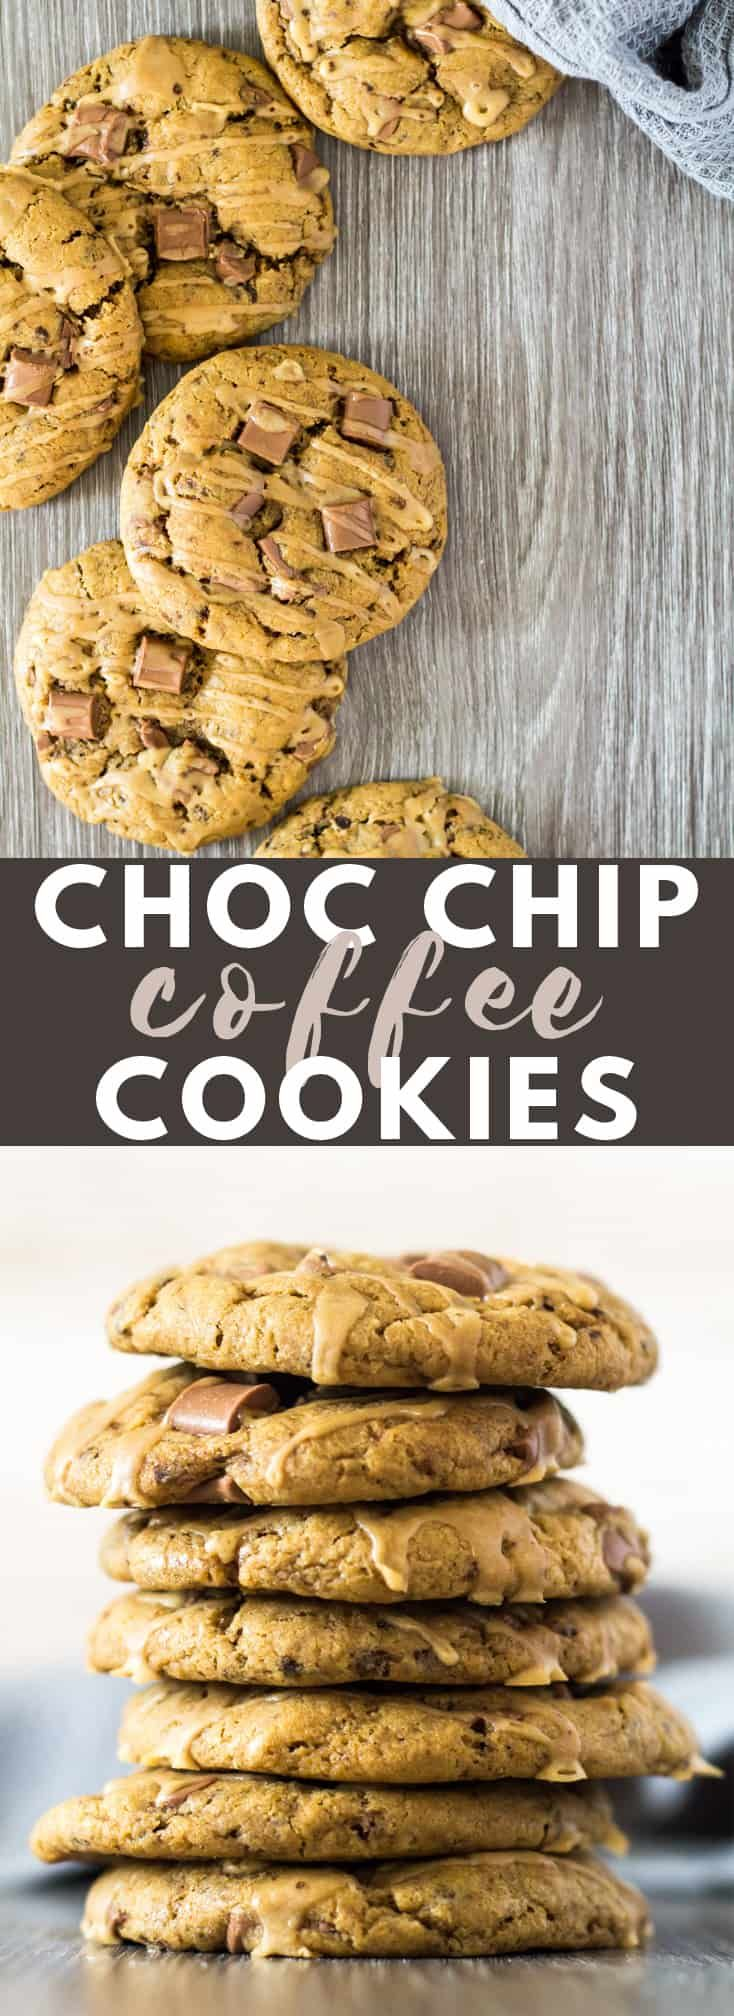 Chocolate Chip Coffee Cookies - Deliciously soft, thick and chewy coffee-infused chocolate chip cookies toppedwith a coffee drizzle!